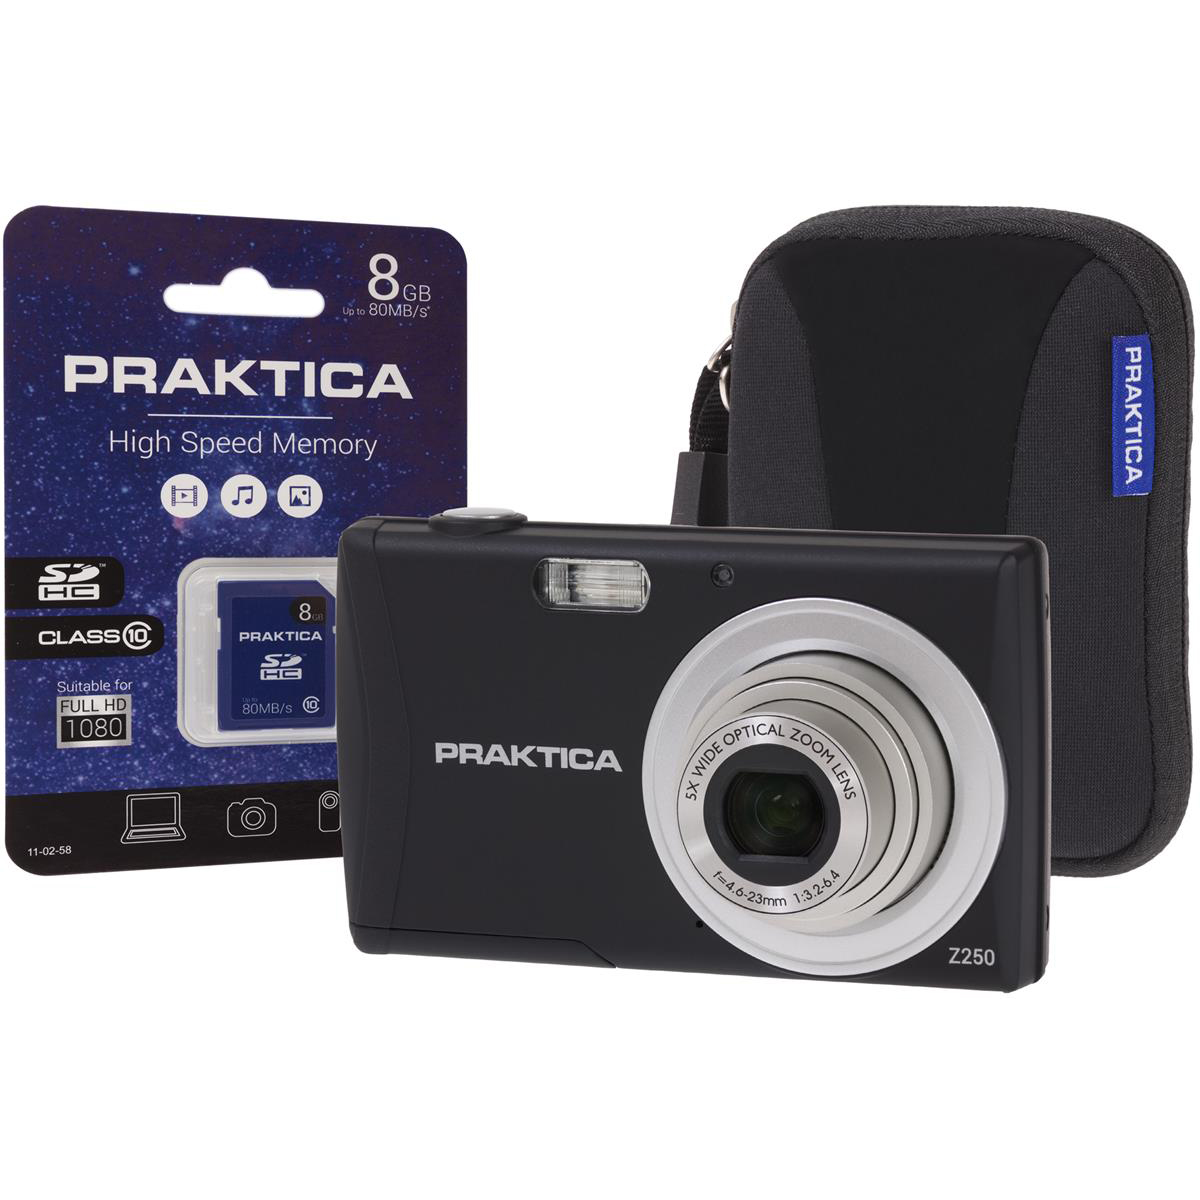 Praktica Z250 Digital Camera Kit 20MP HD Video 5x Optical Zoom Case and 8GB SD Card Black Ref PRA176